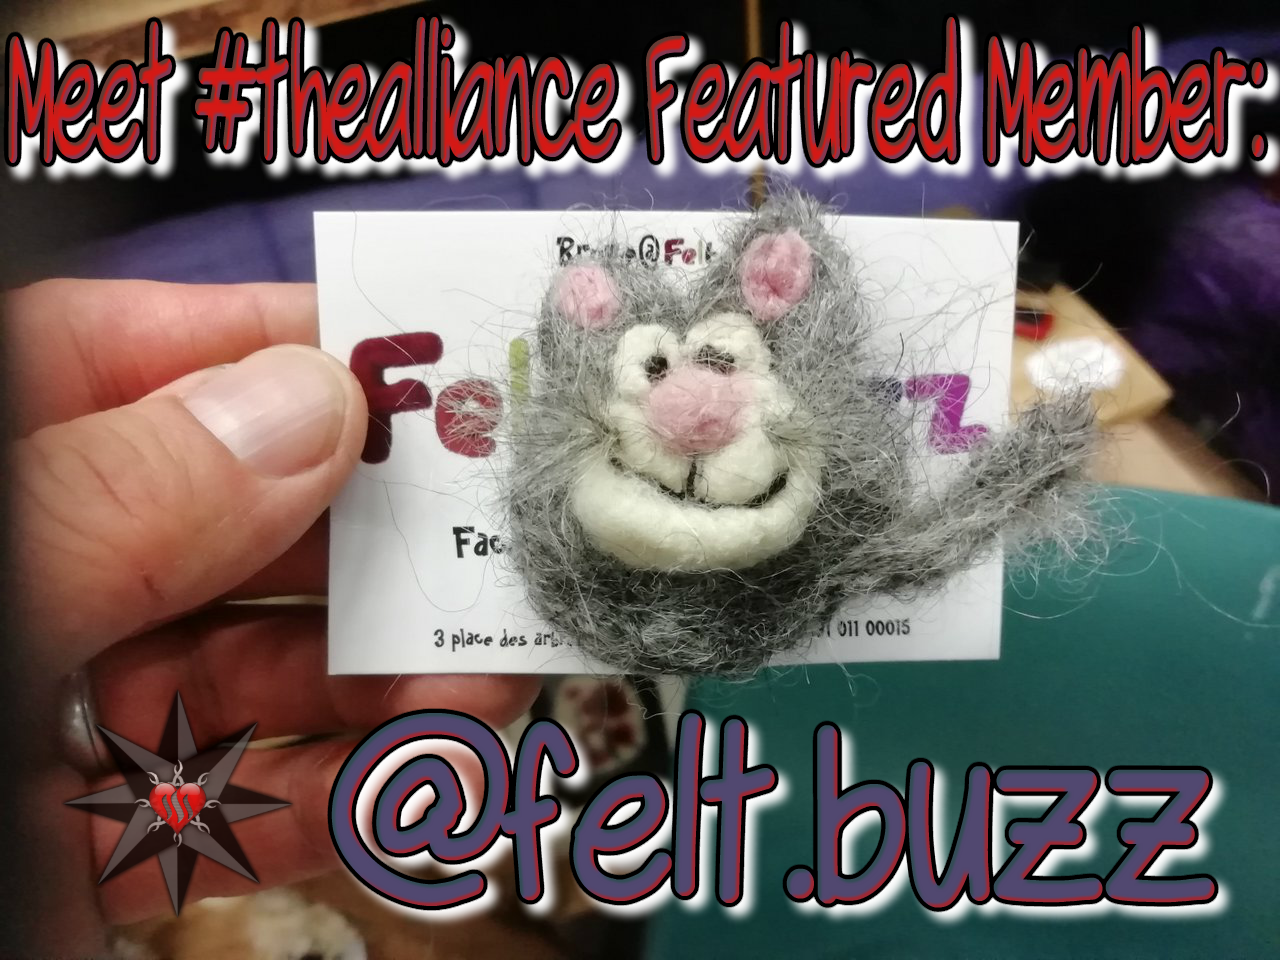 felt.buzz featuredmember.png